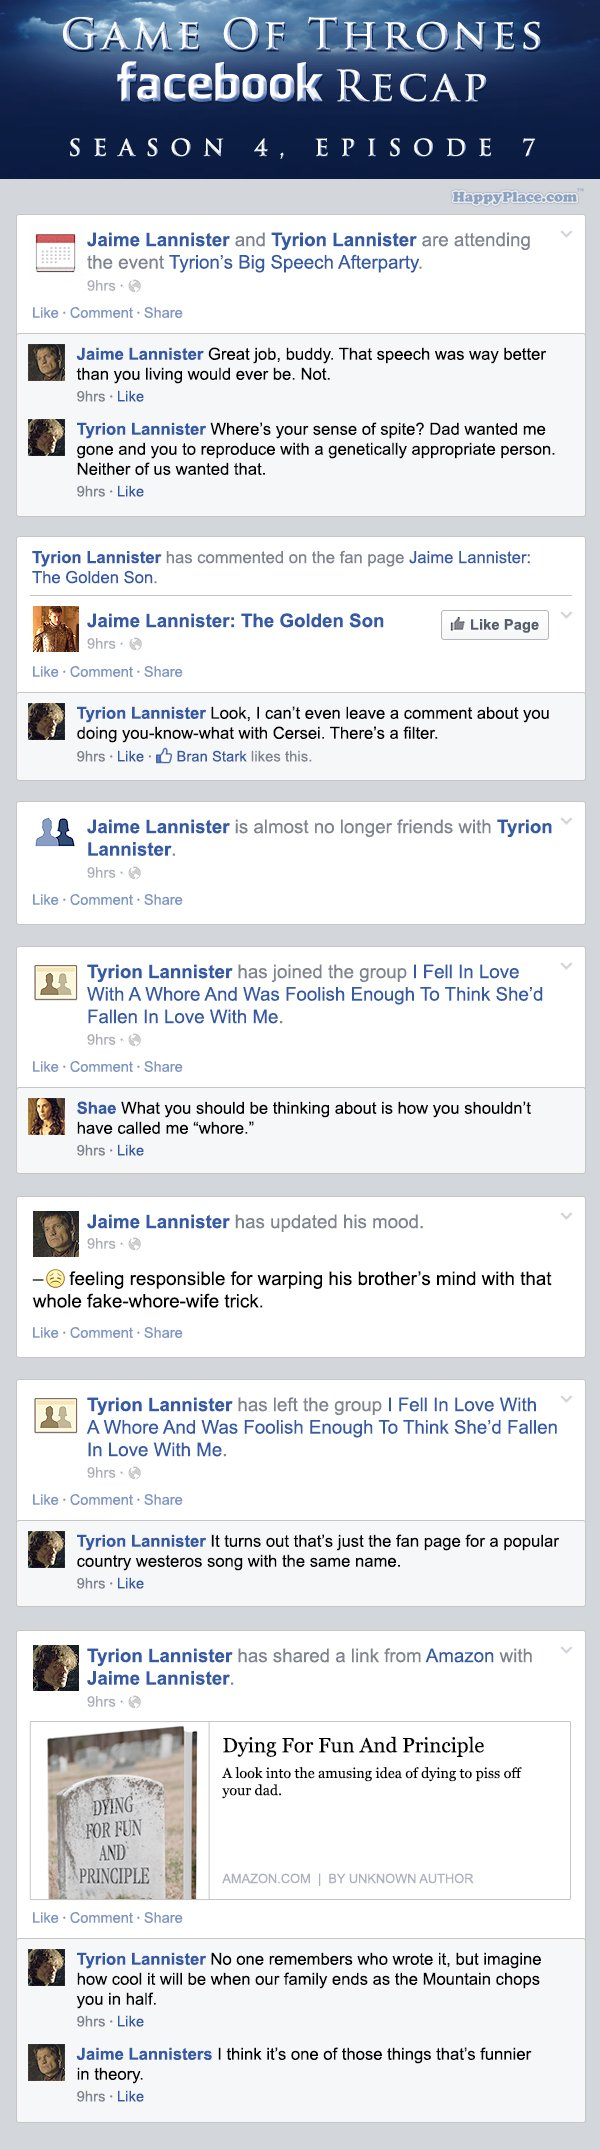 If Game of Thrones took place entirely on Facebook - Season 4, Episode 7